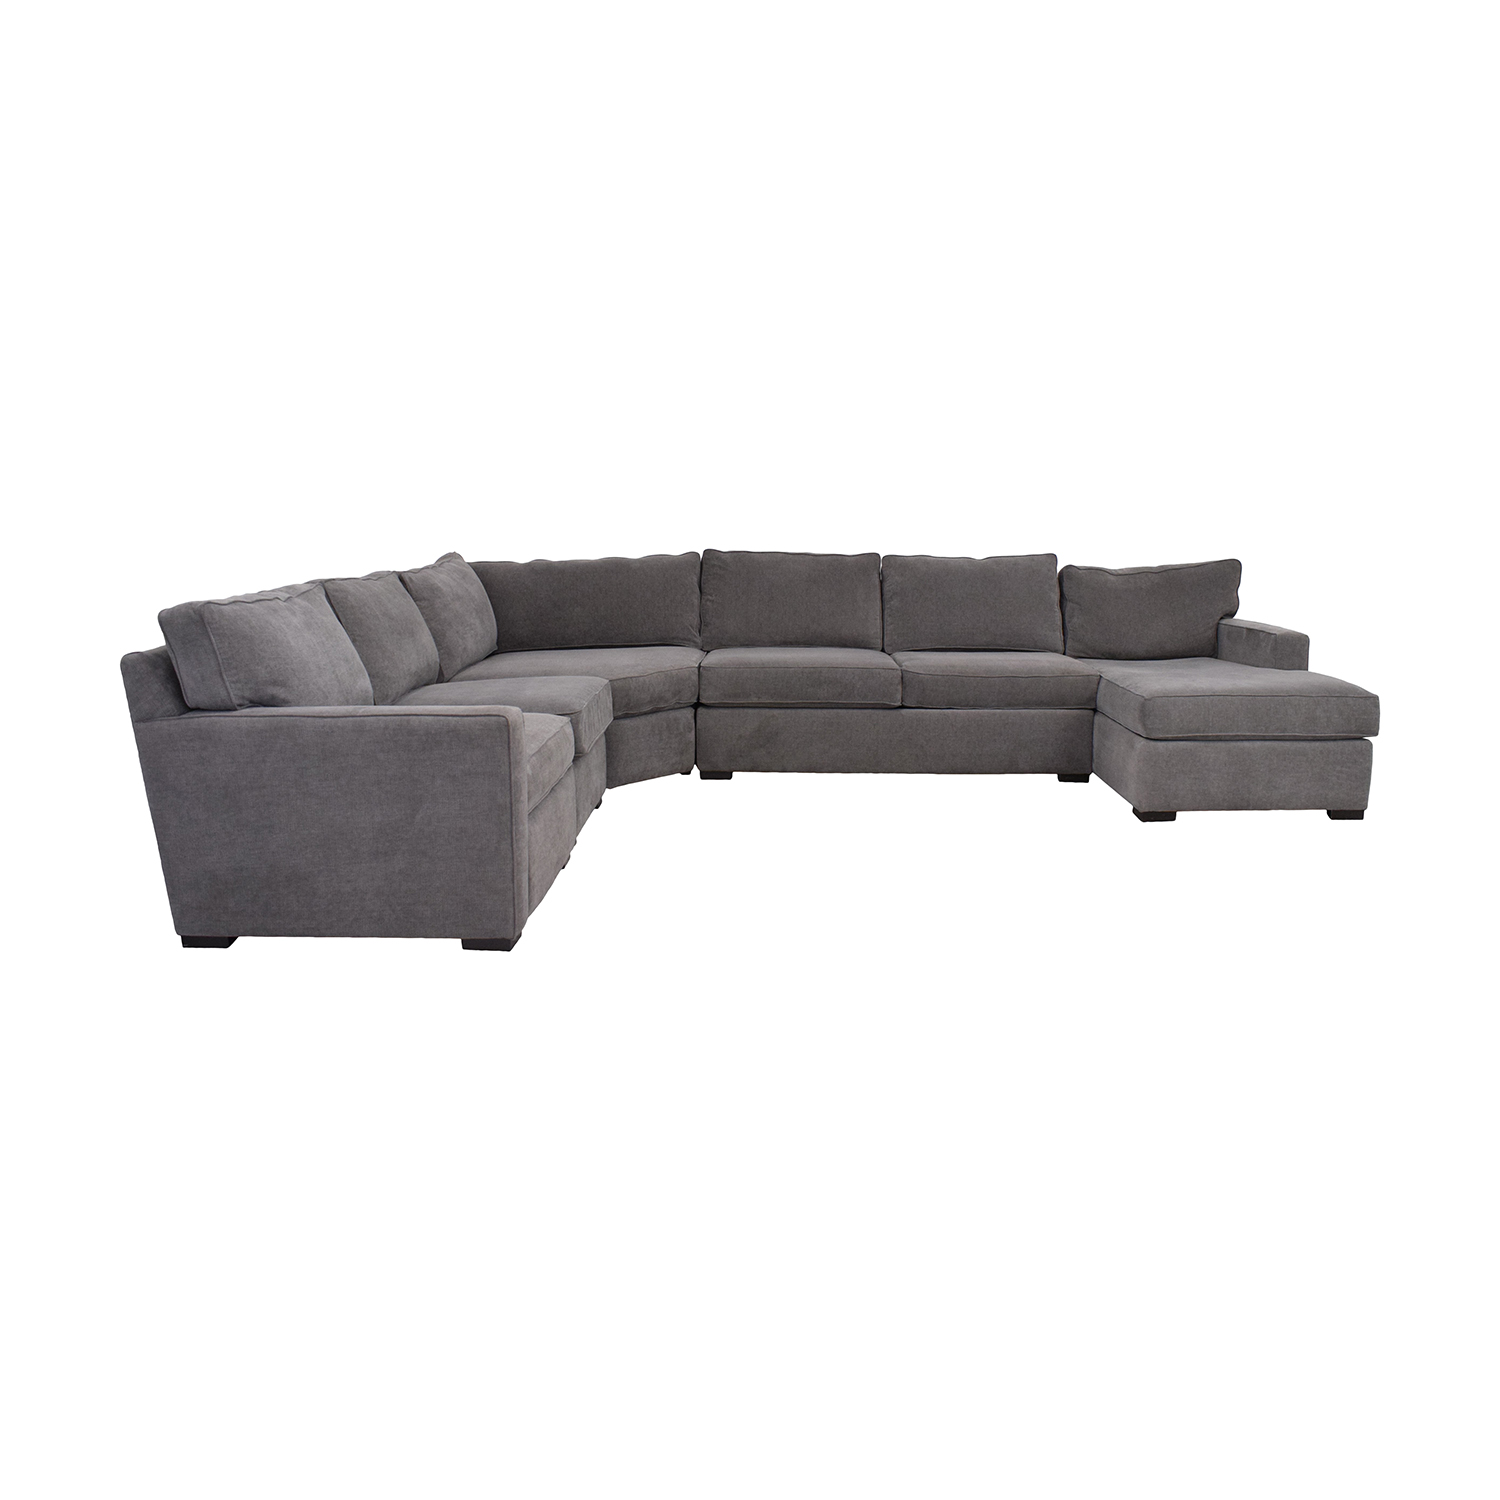 buy Macy's Radley Fabric 6-Piece Chaise Sectional Sofa with Corner Piece and Ottoman Macy's Sectionals